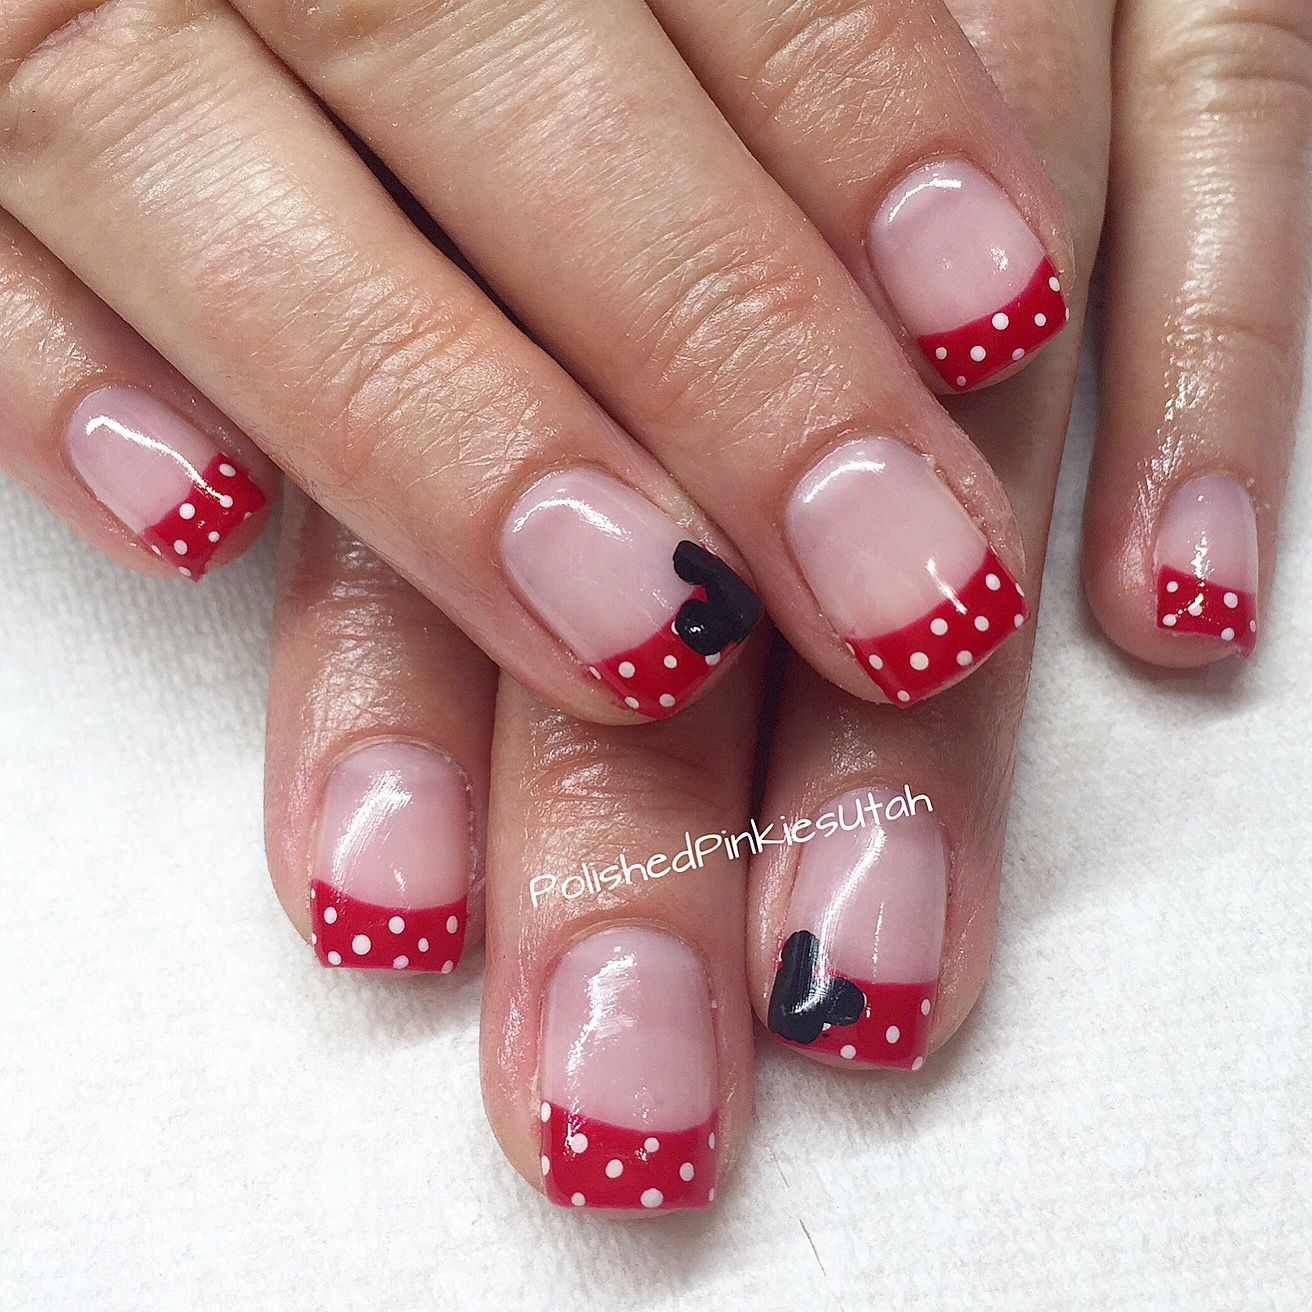 Polished Pinkies Utah: Disneyland nails! Red with white polka dots ...